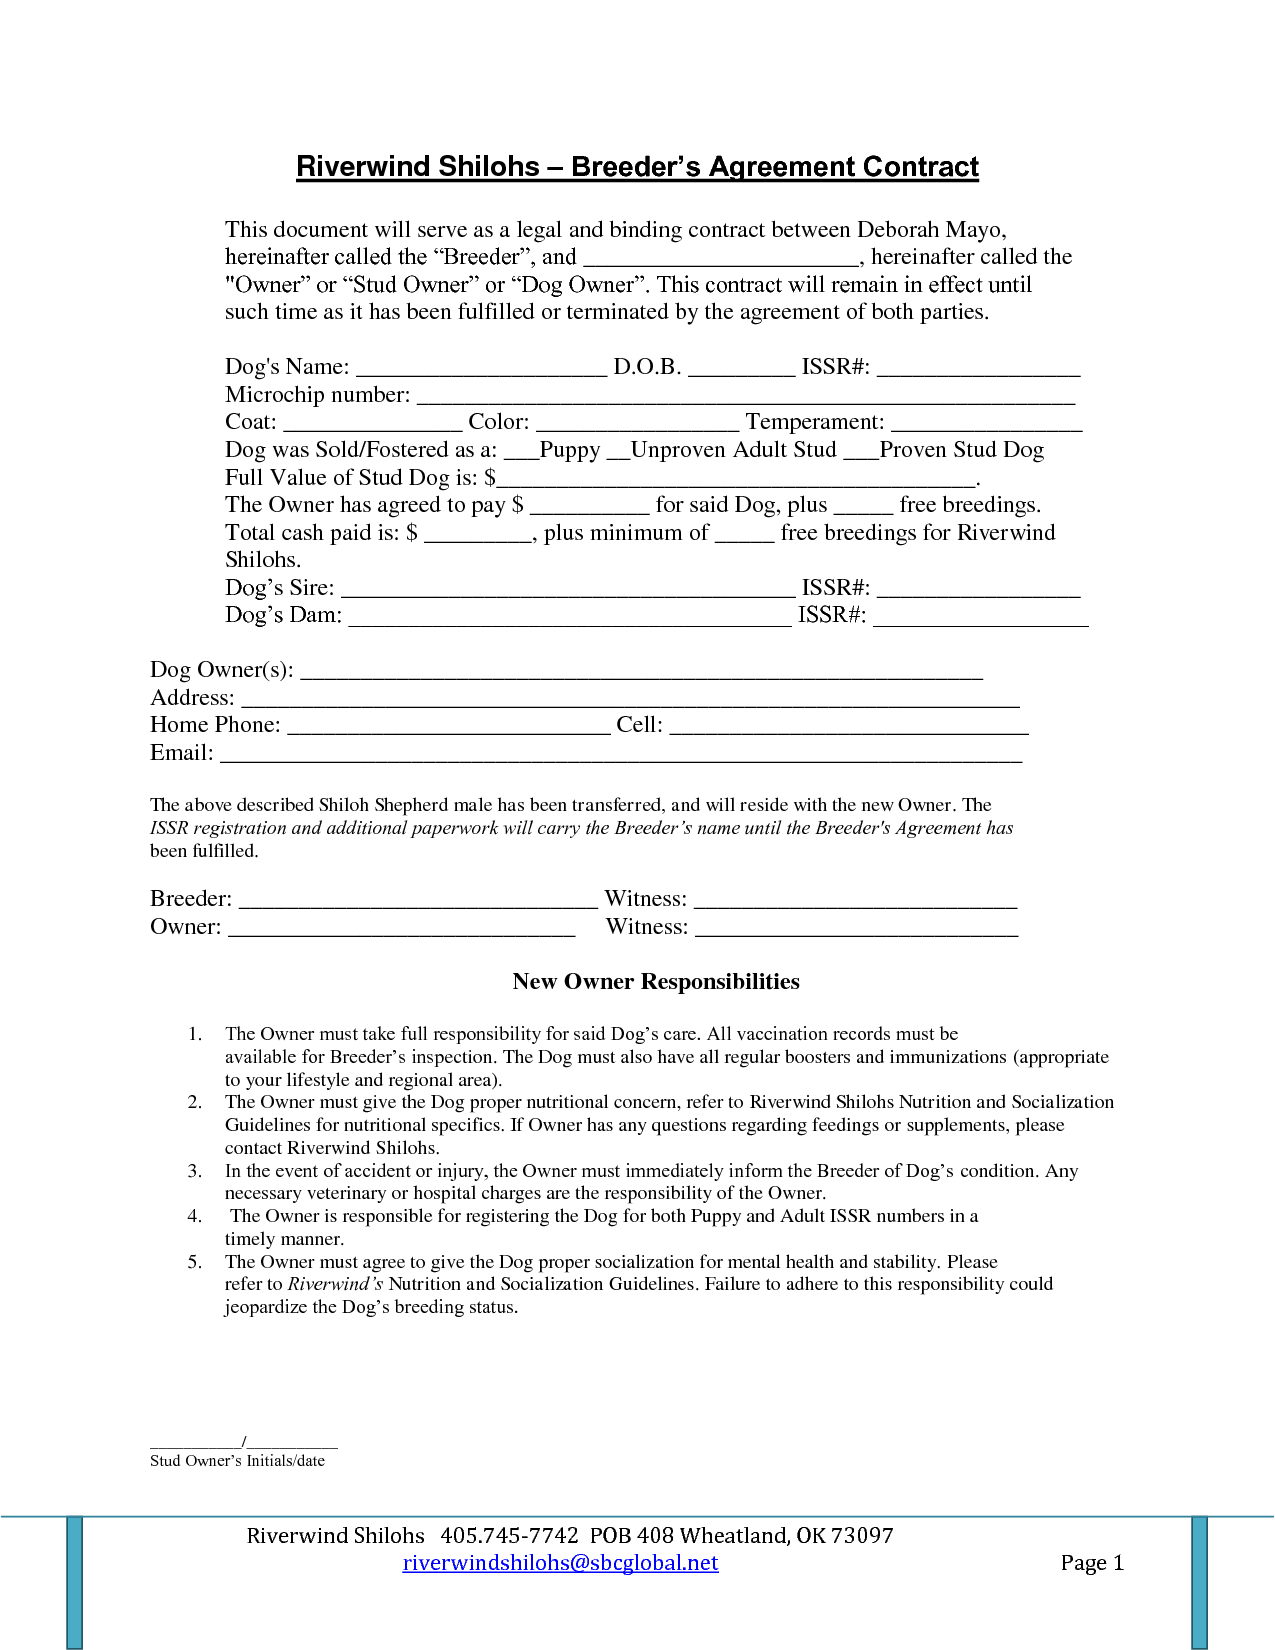 Binding Contract Sample Kleobeachfixco - Legally binding loan agreement template